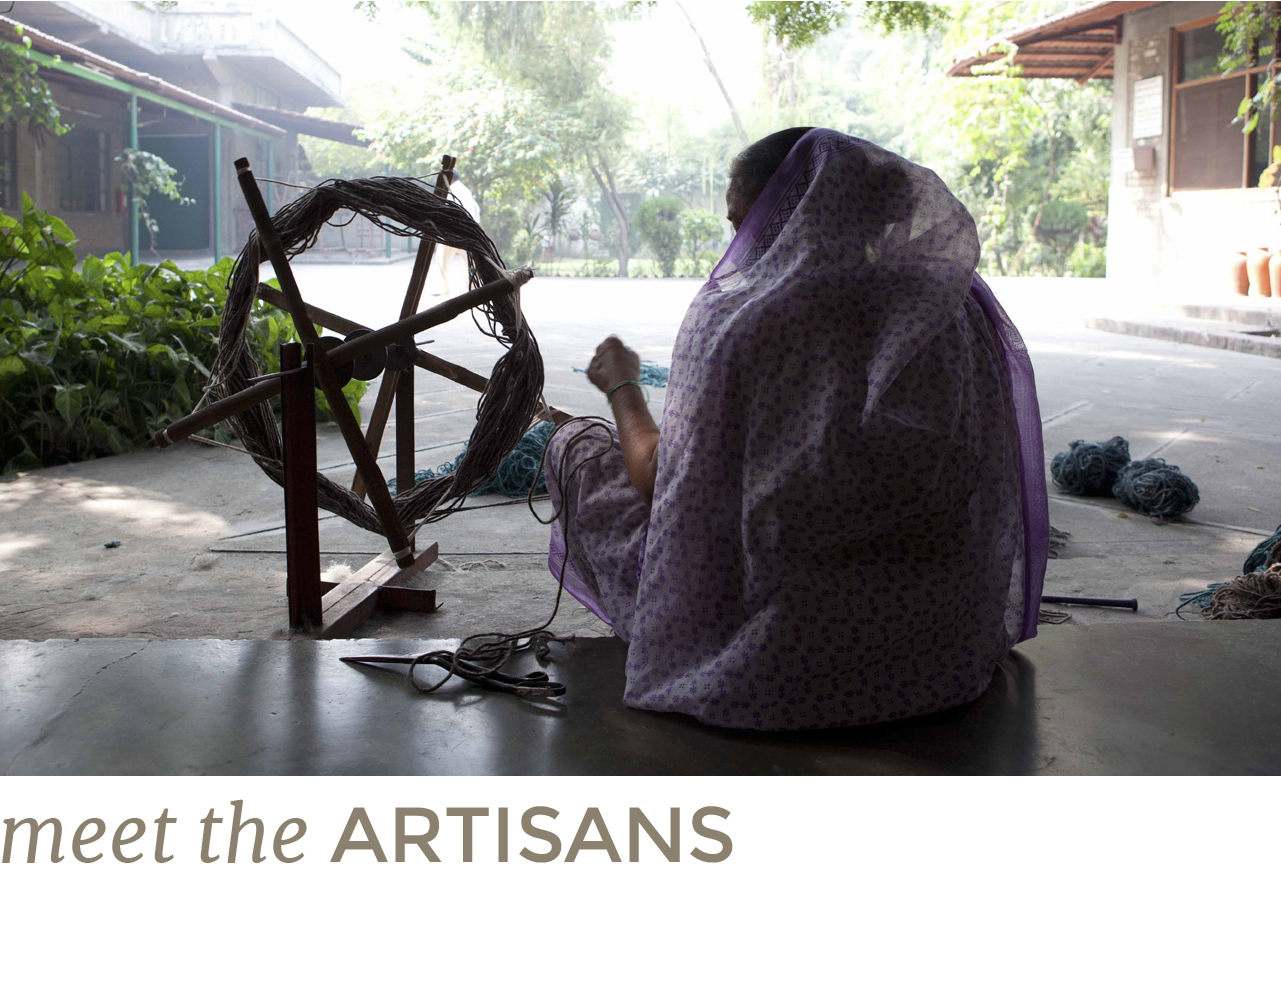 meet the artisans thumbnail